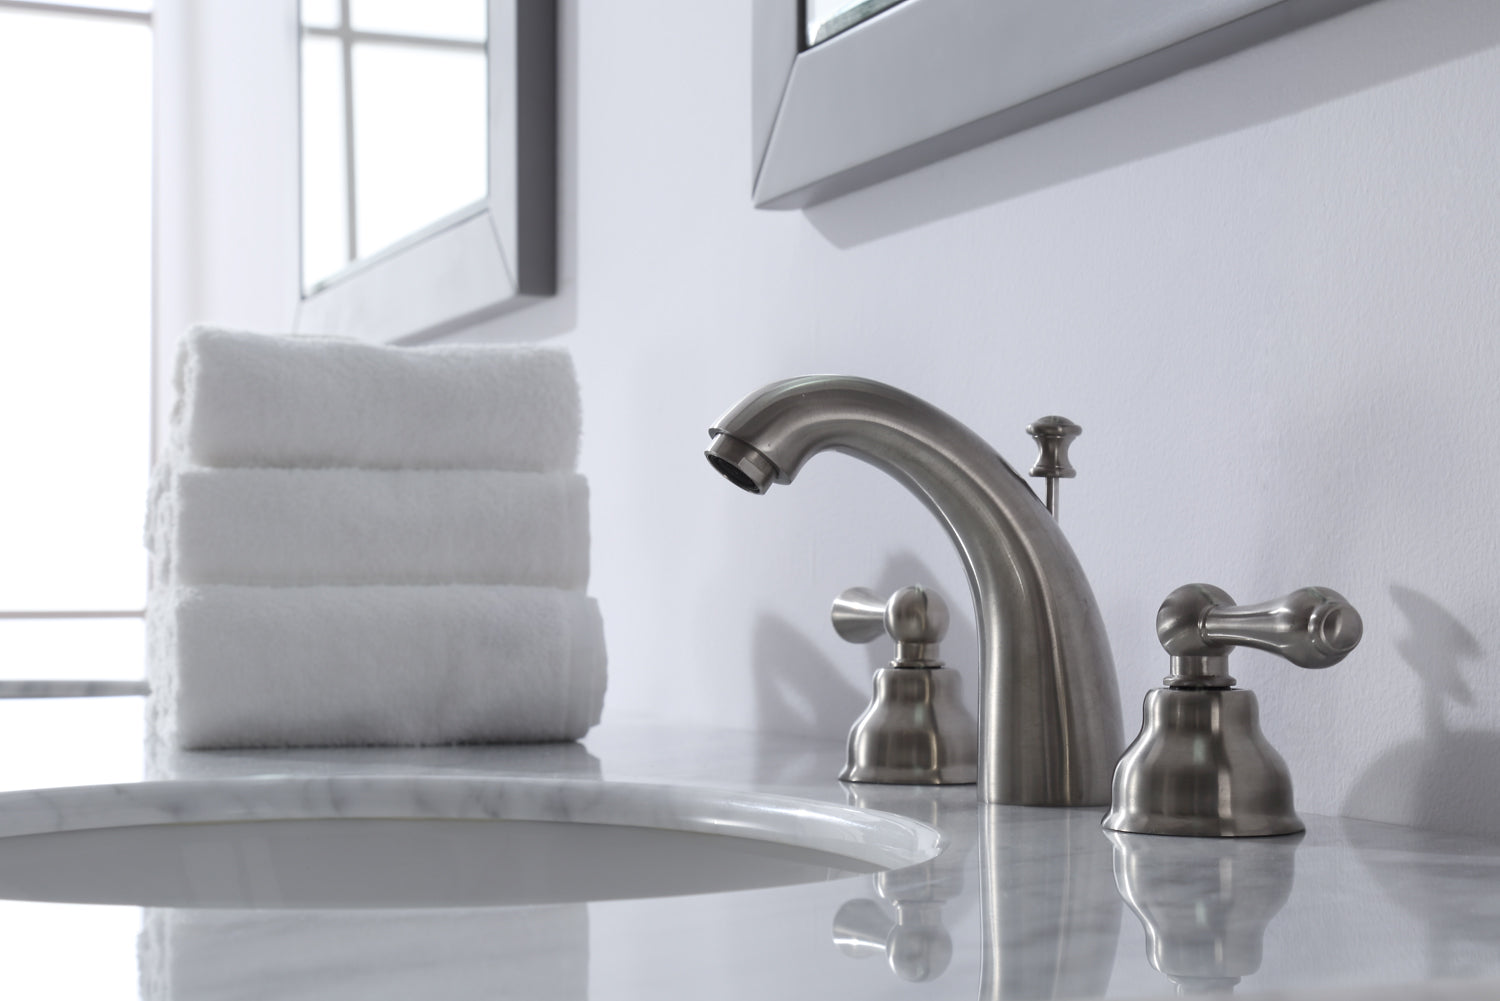 Bathroom Faucets MHB Buying Guide